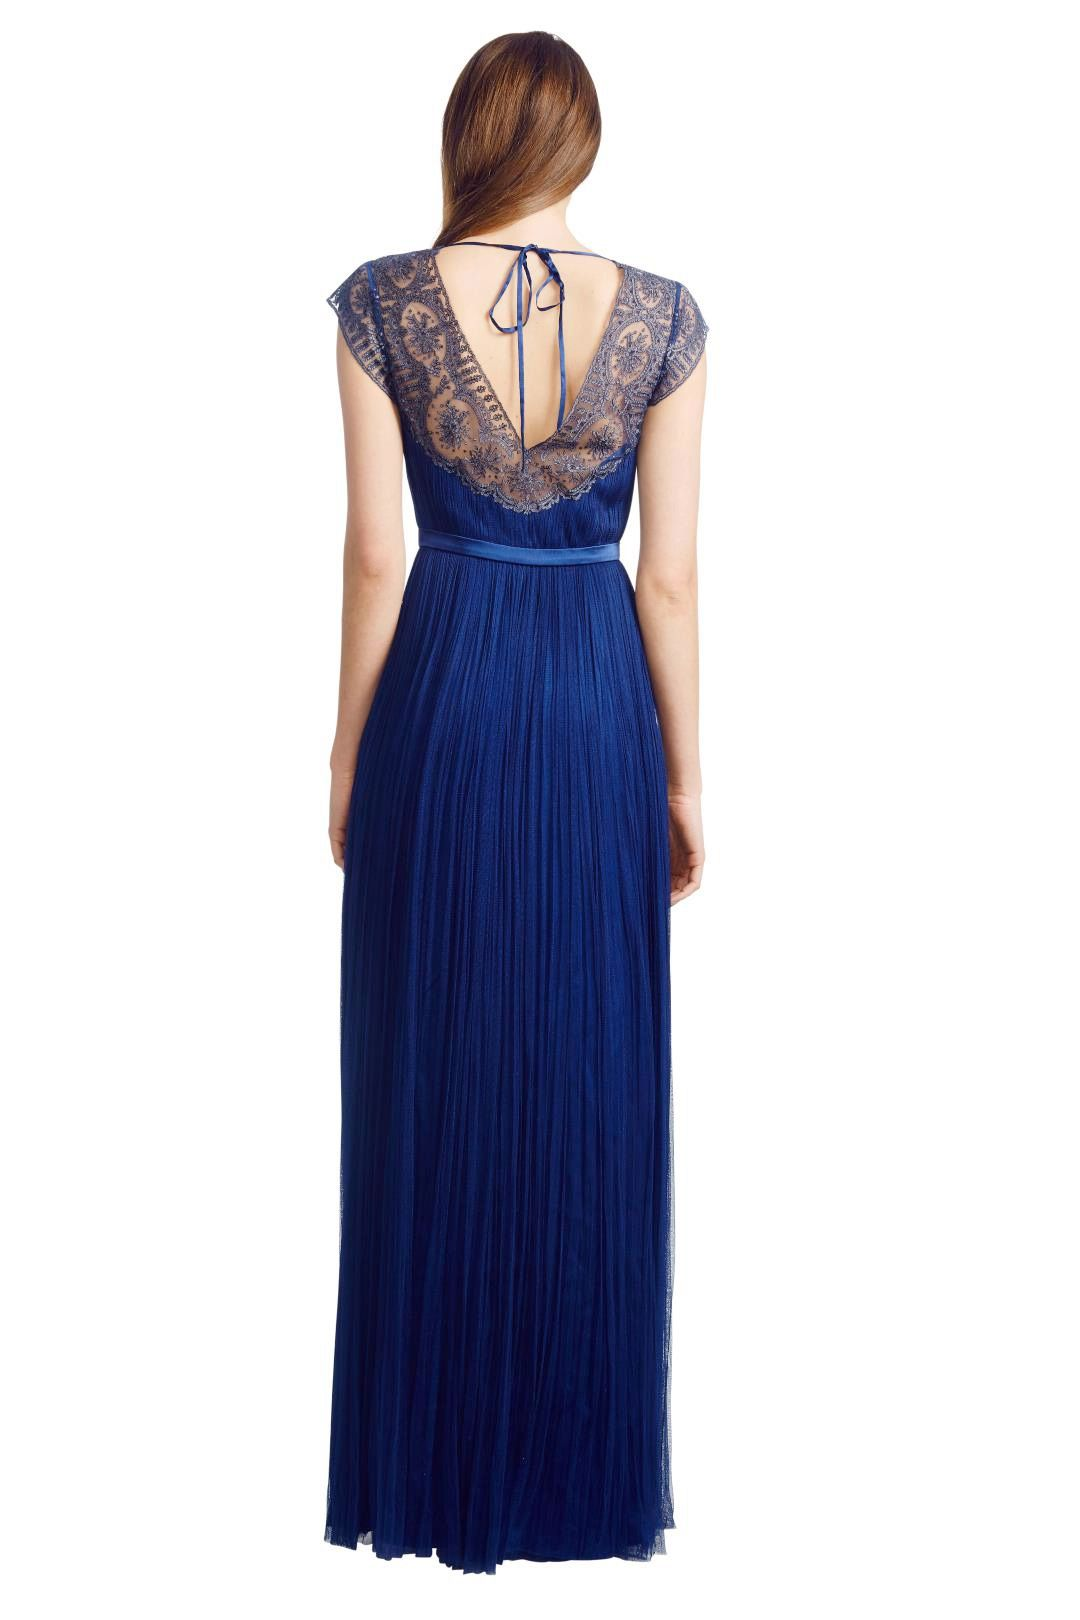 Catherine Deane - Silk Tulle Gown - Blue - Back